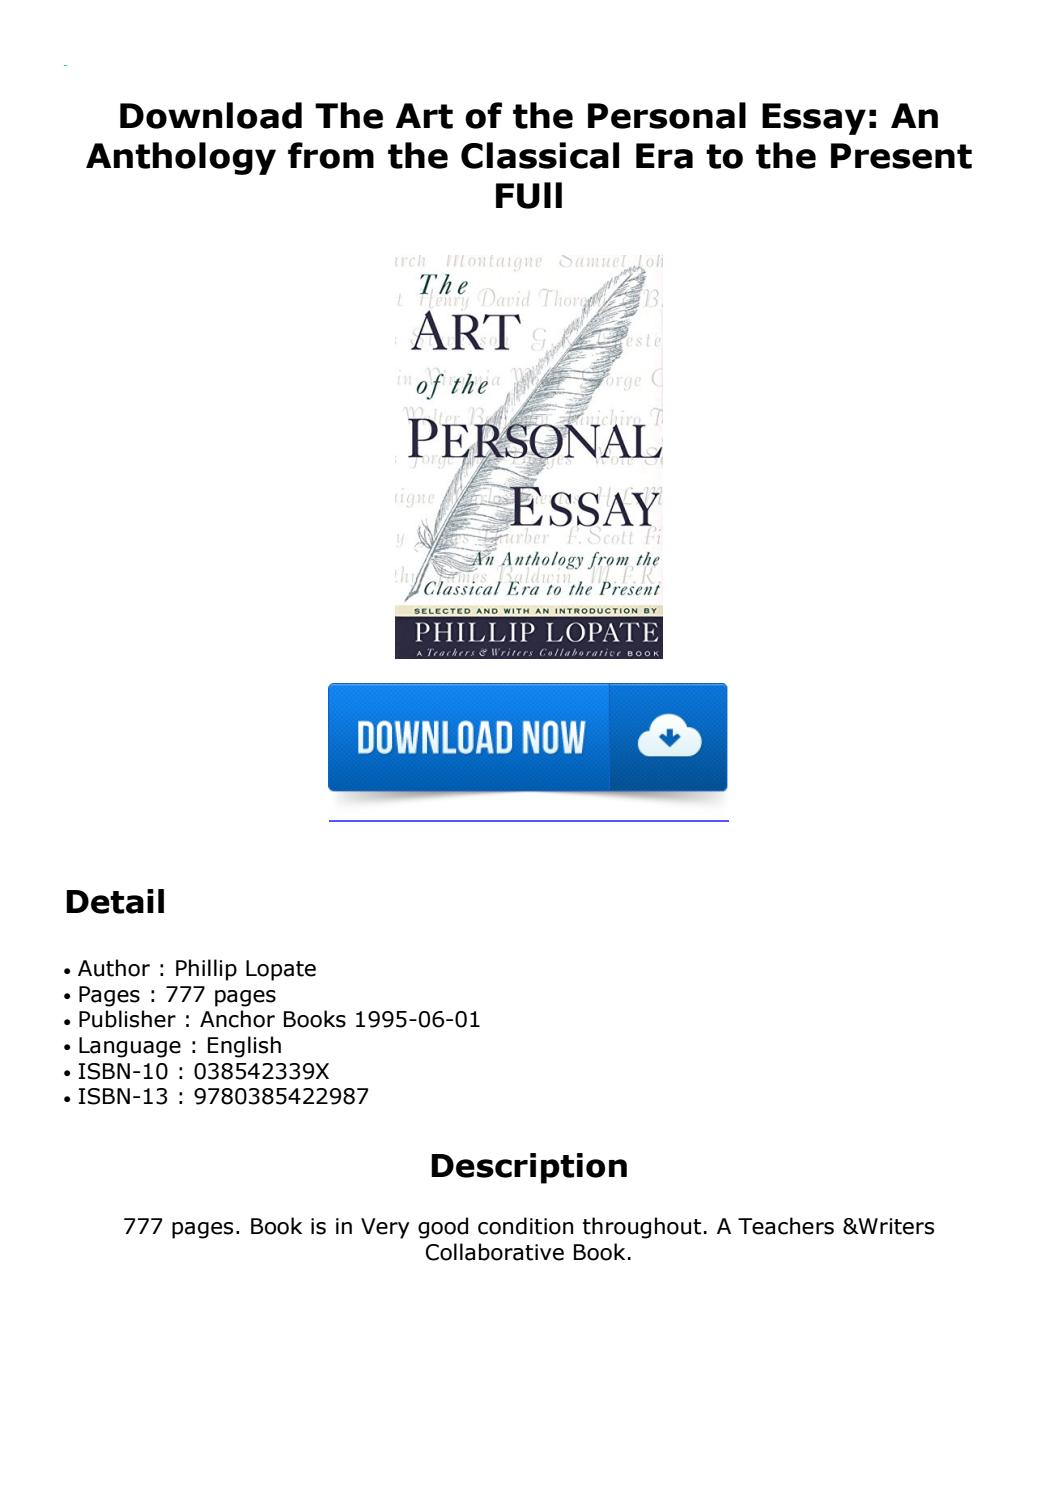 002 Page 1 The Art Of Personal Essay Beautiful Pdf Download Table Contents Full